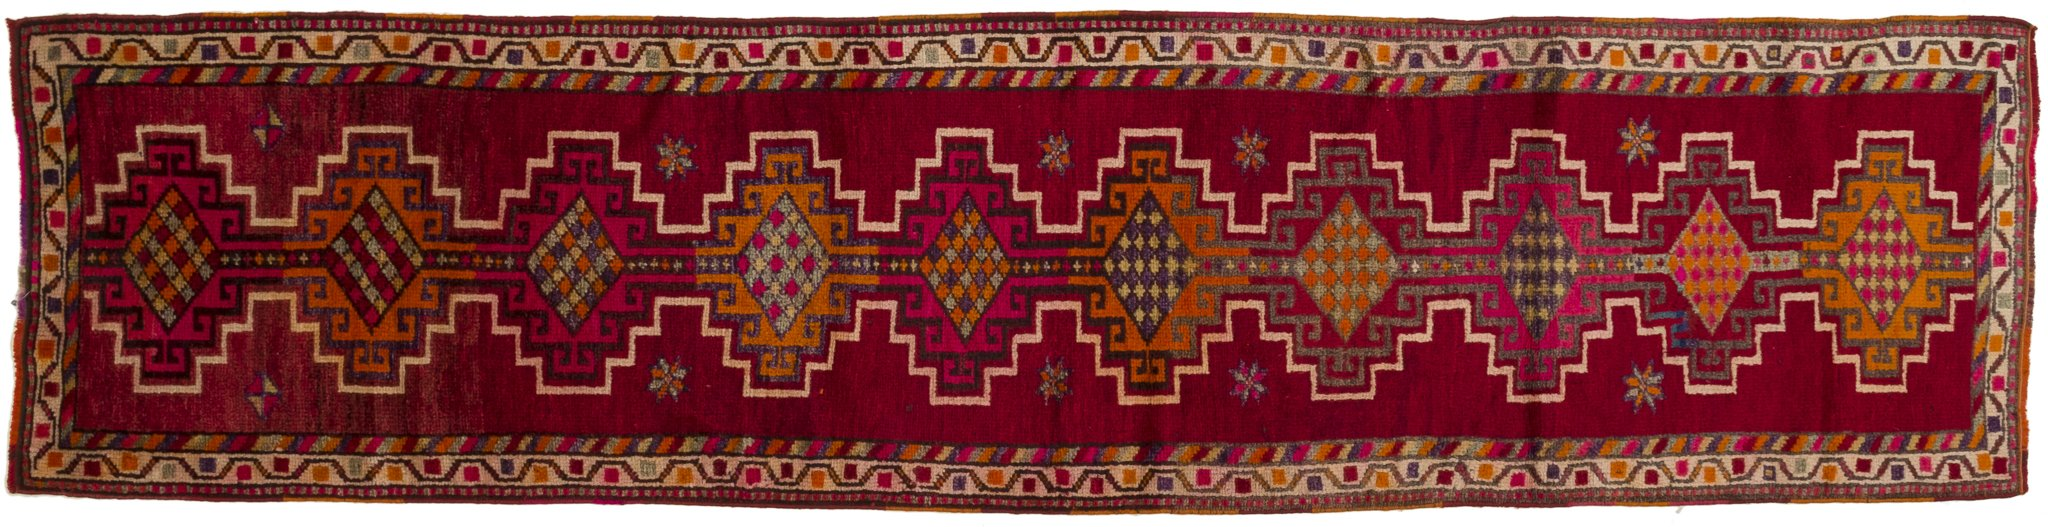 Vintage Turkish Runner Rug Arnfinnur